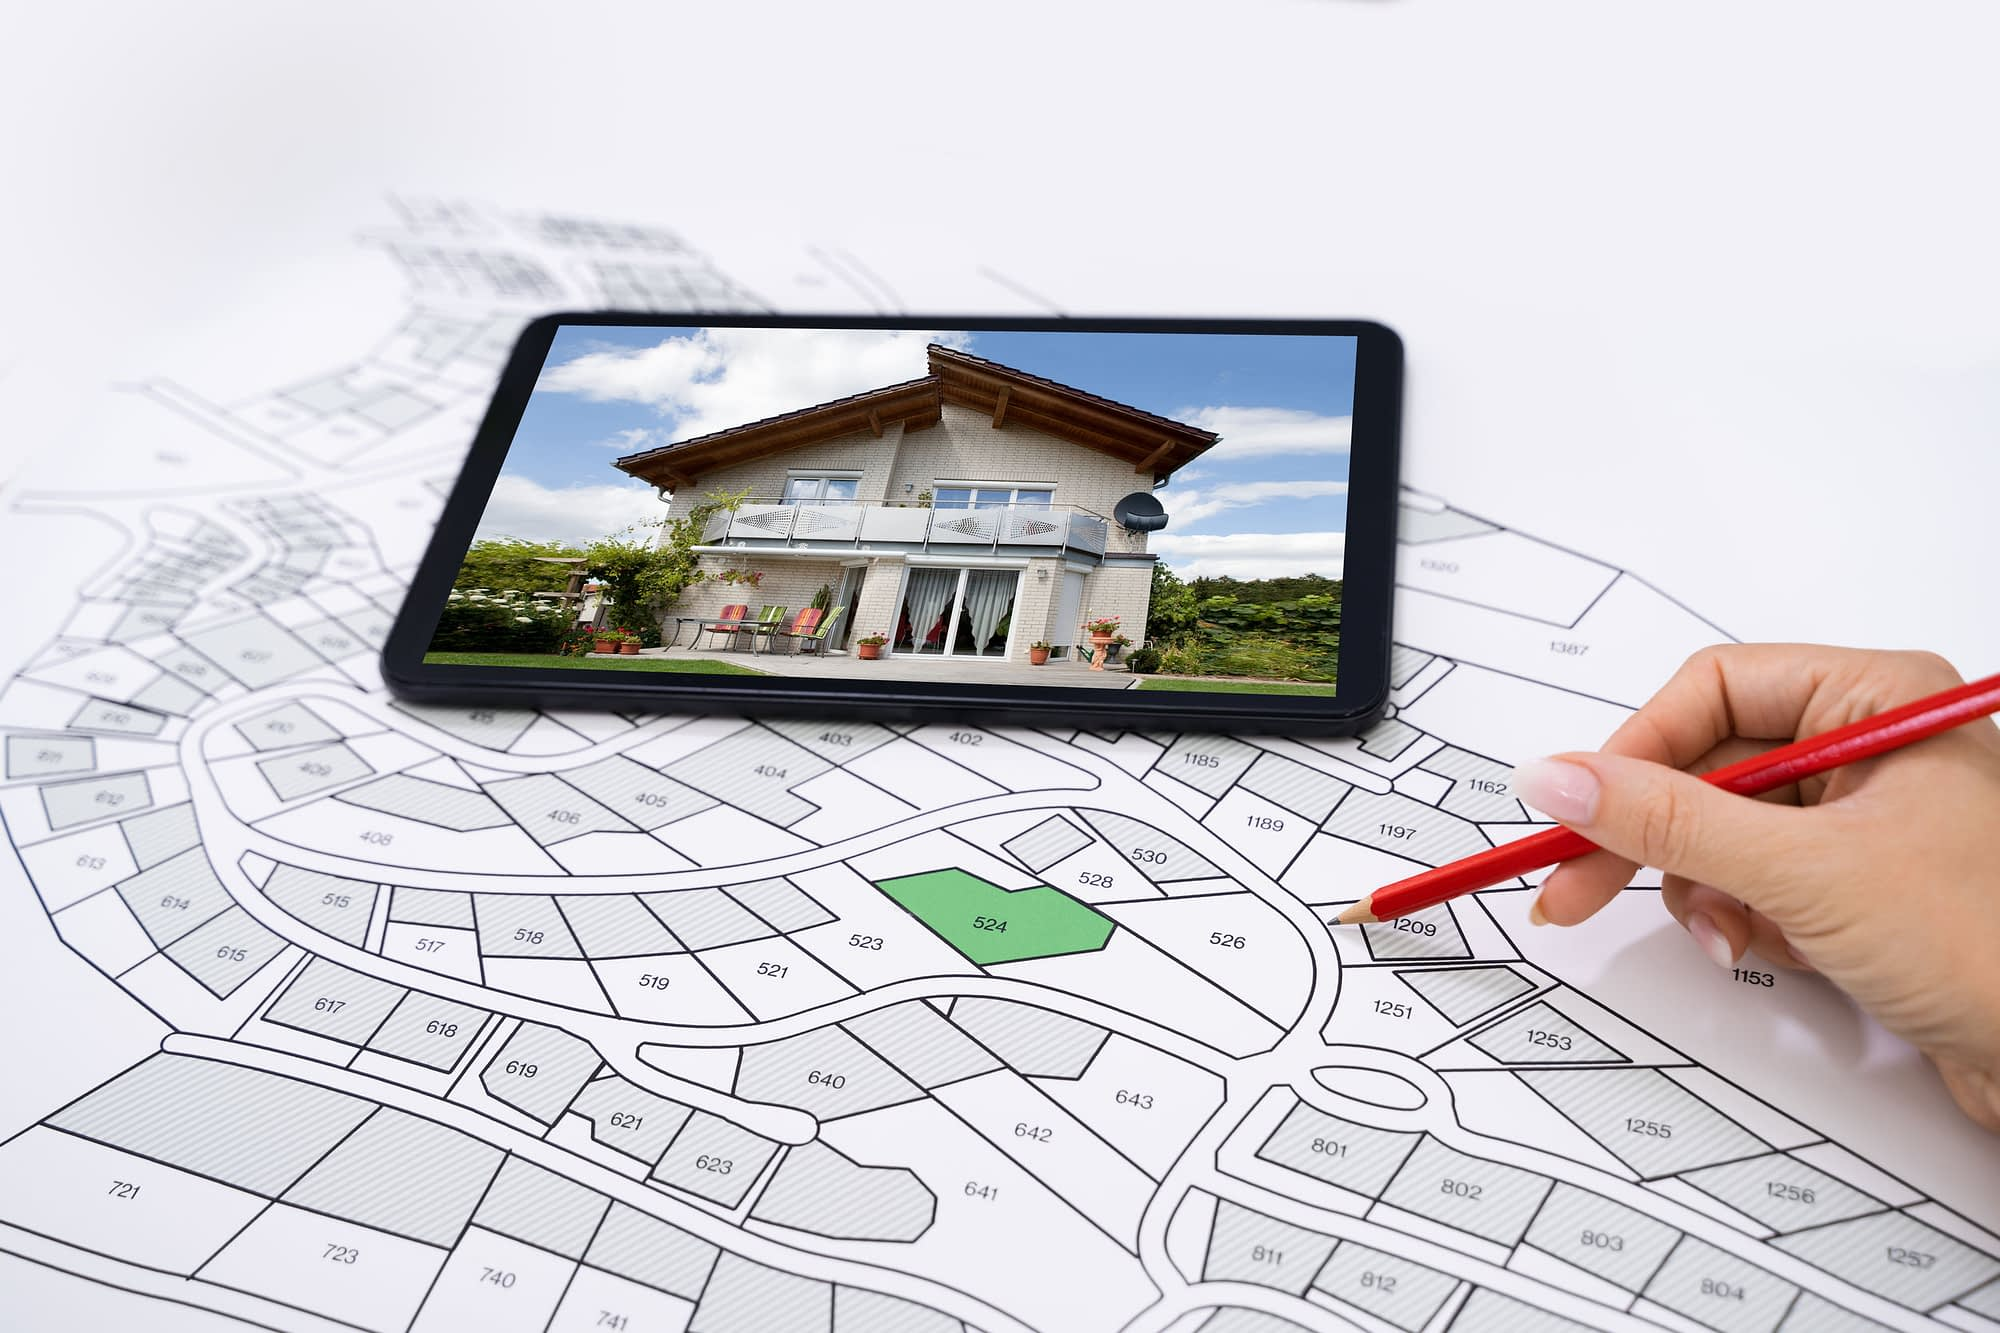 Hand Holding Pencil Over Cadastre Map New Tablet With House Photo